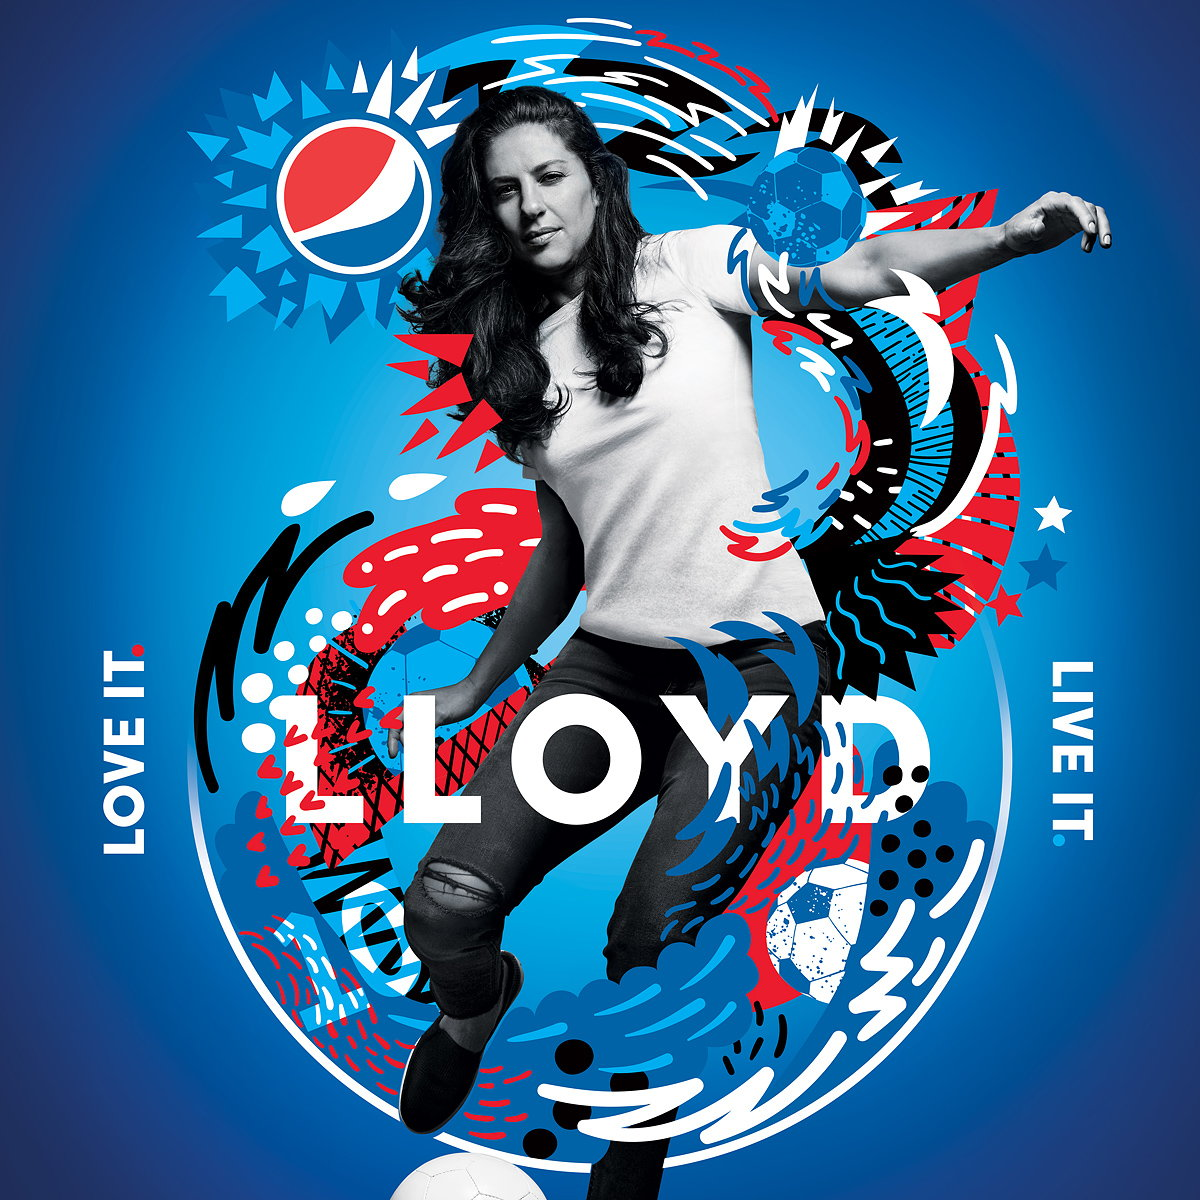 Pepsi Love It. Live It. Football. Campaign